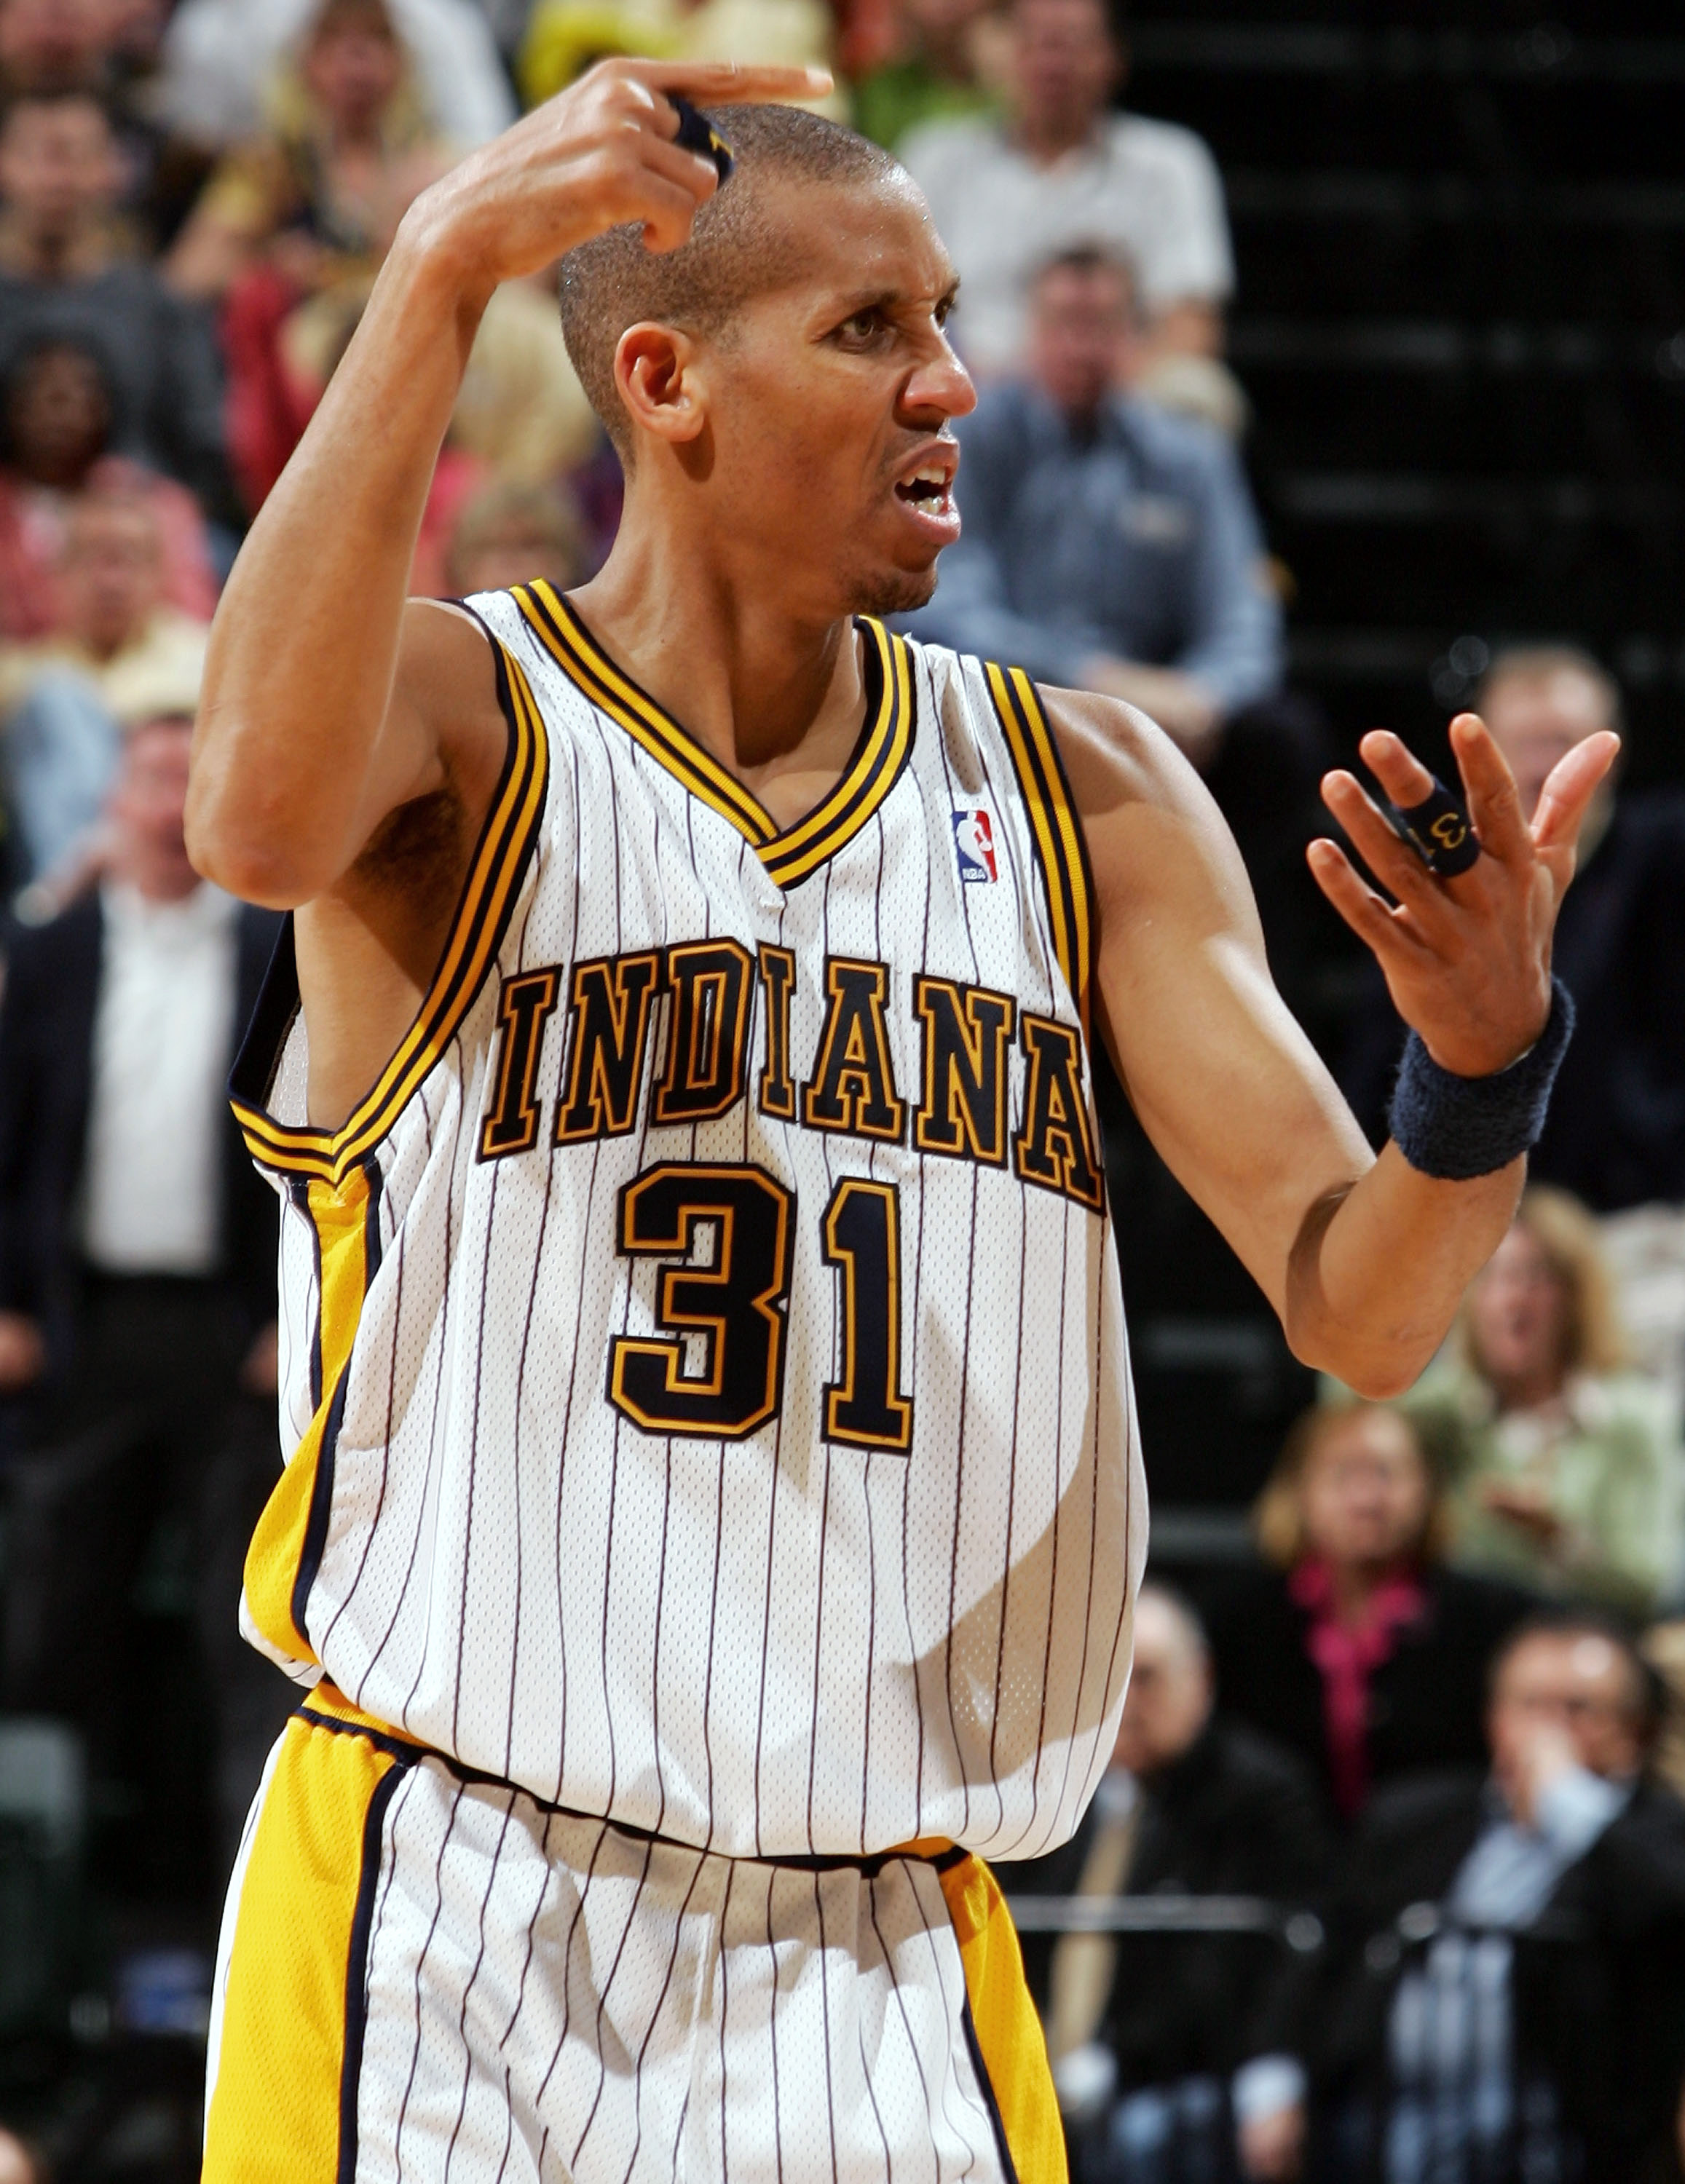 61230f0d92f INDIANAPOLIS - MAY 15  Reggie Miller  31 of the Indiana Pacers reacts to a